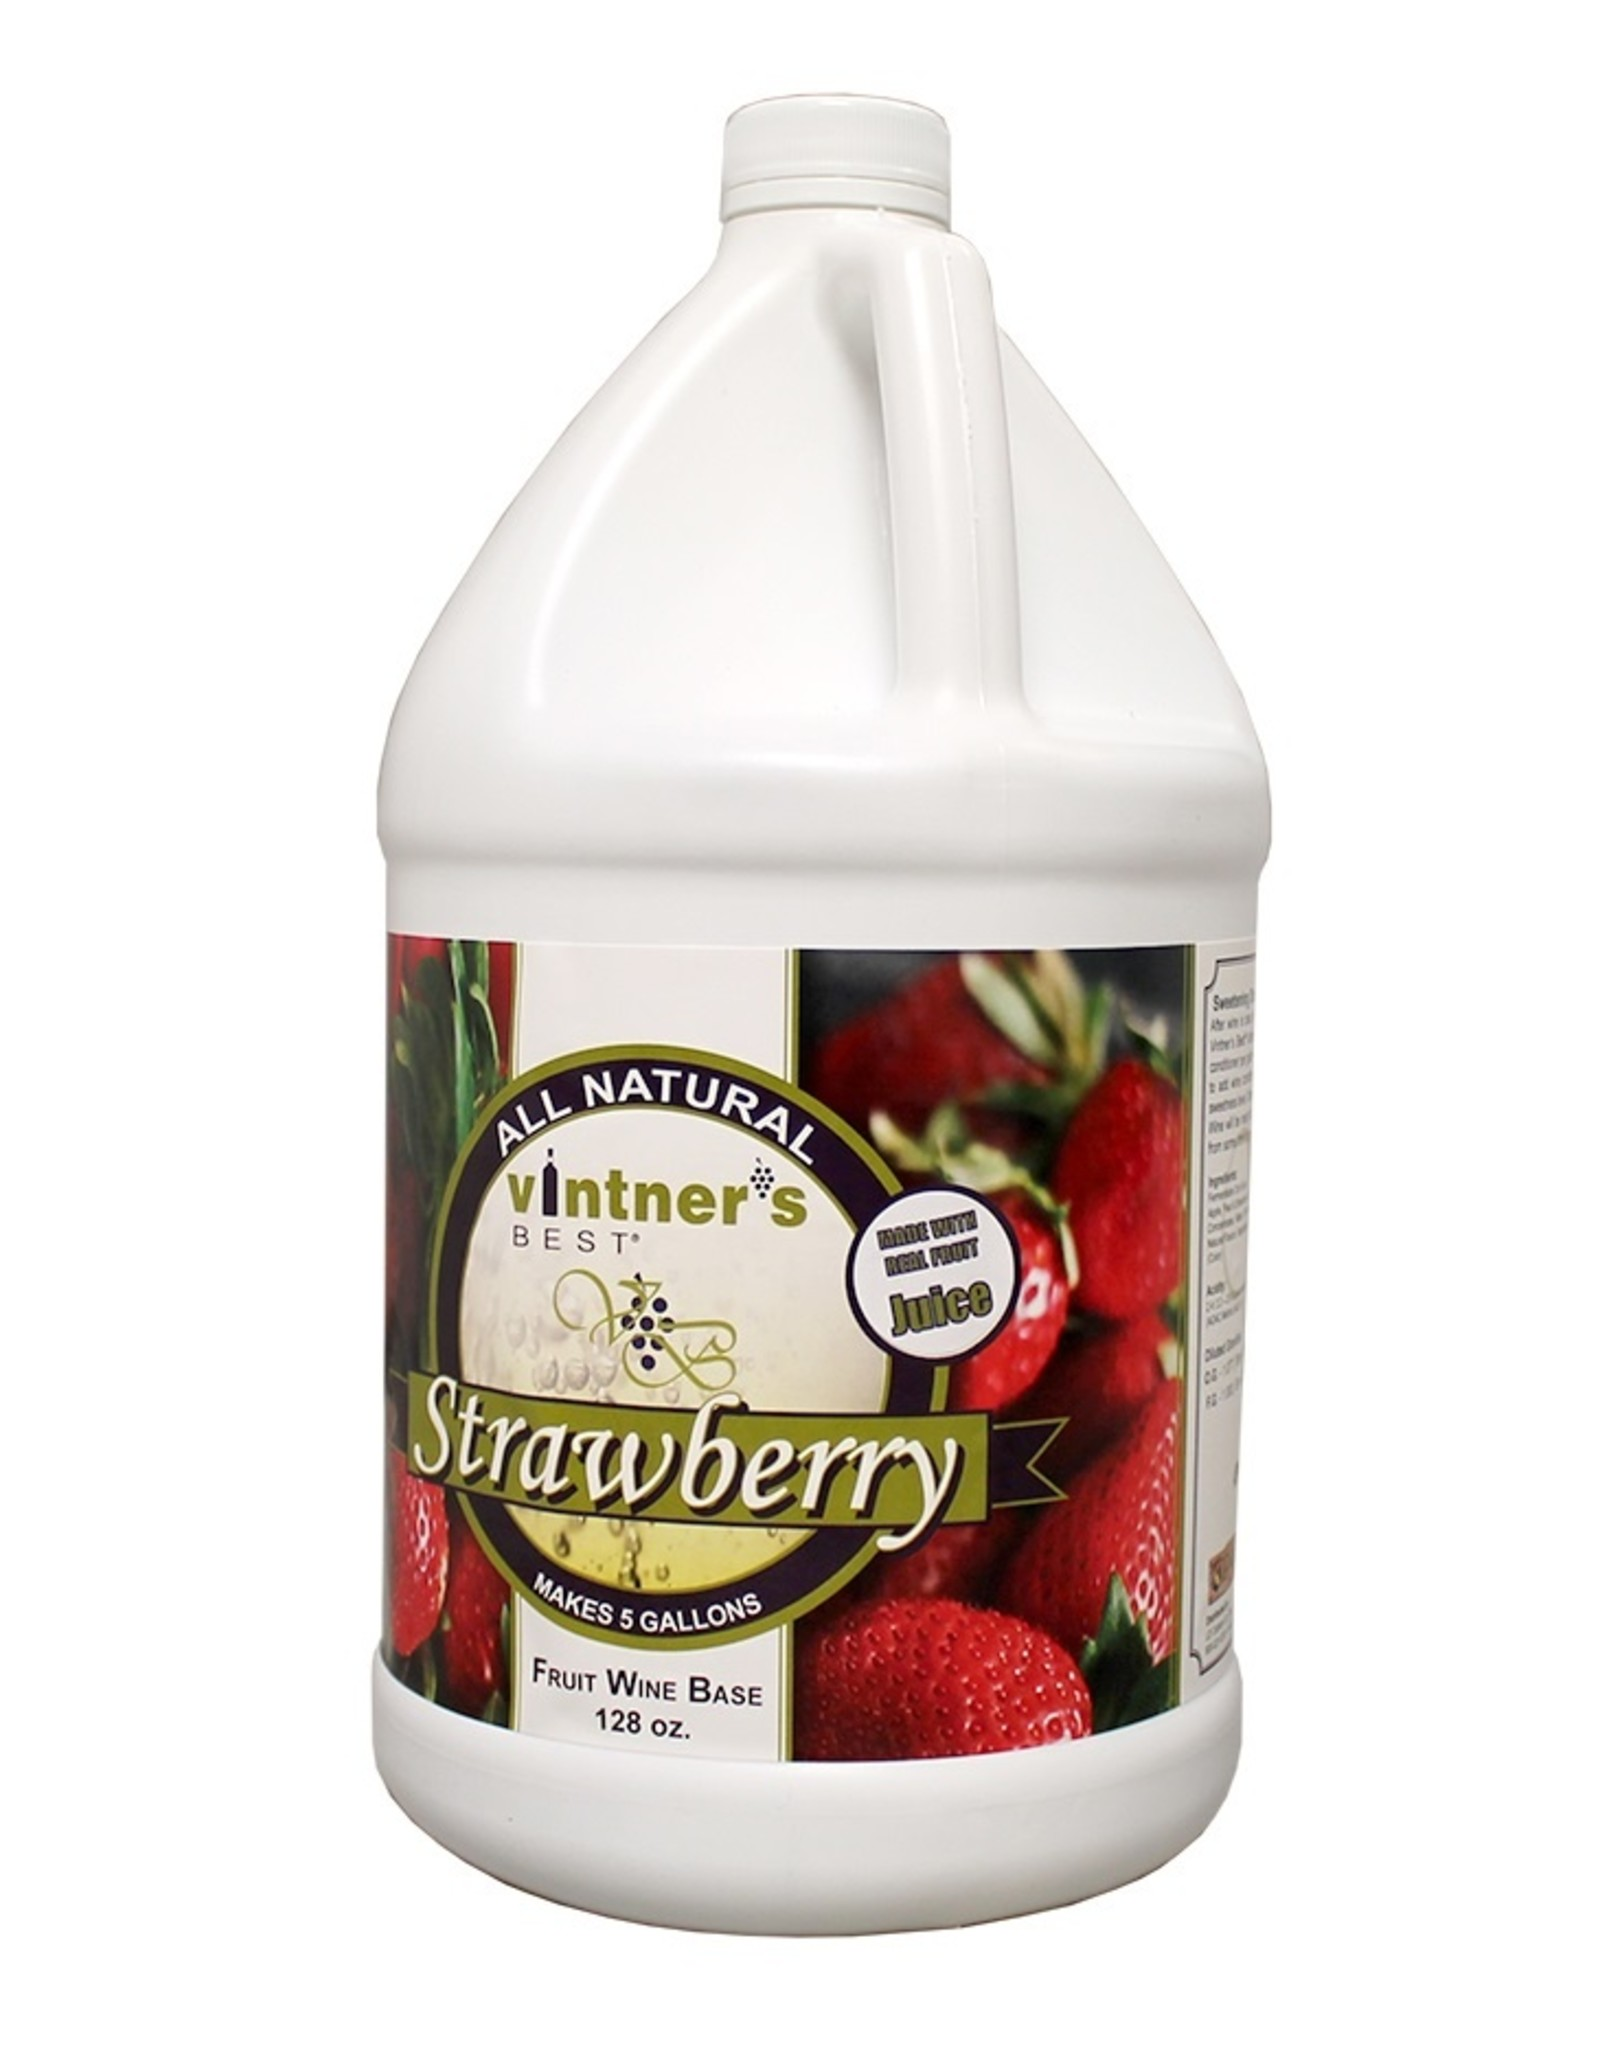 STRAWBERRY WINE BASE 128 oz (1GAL)